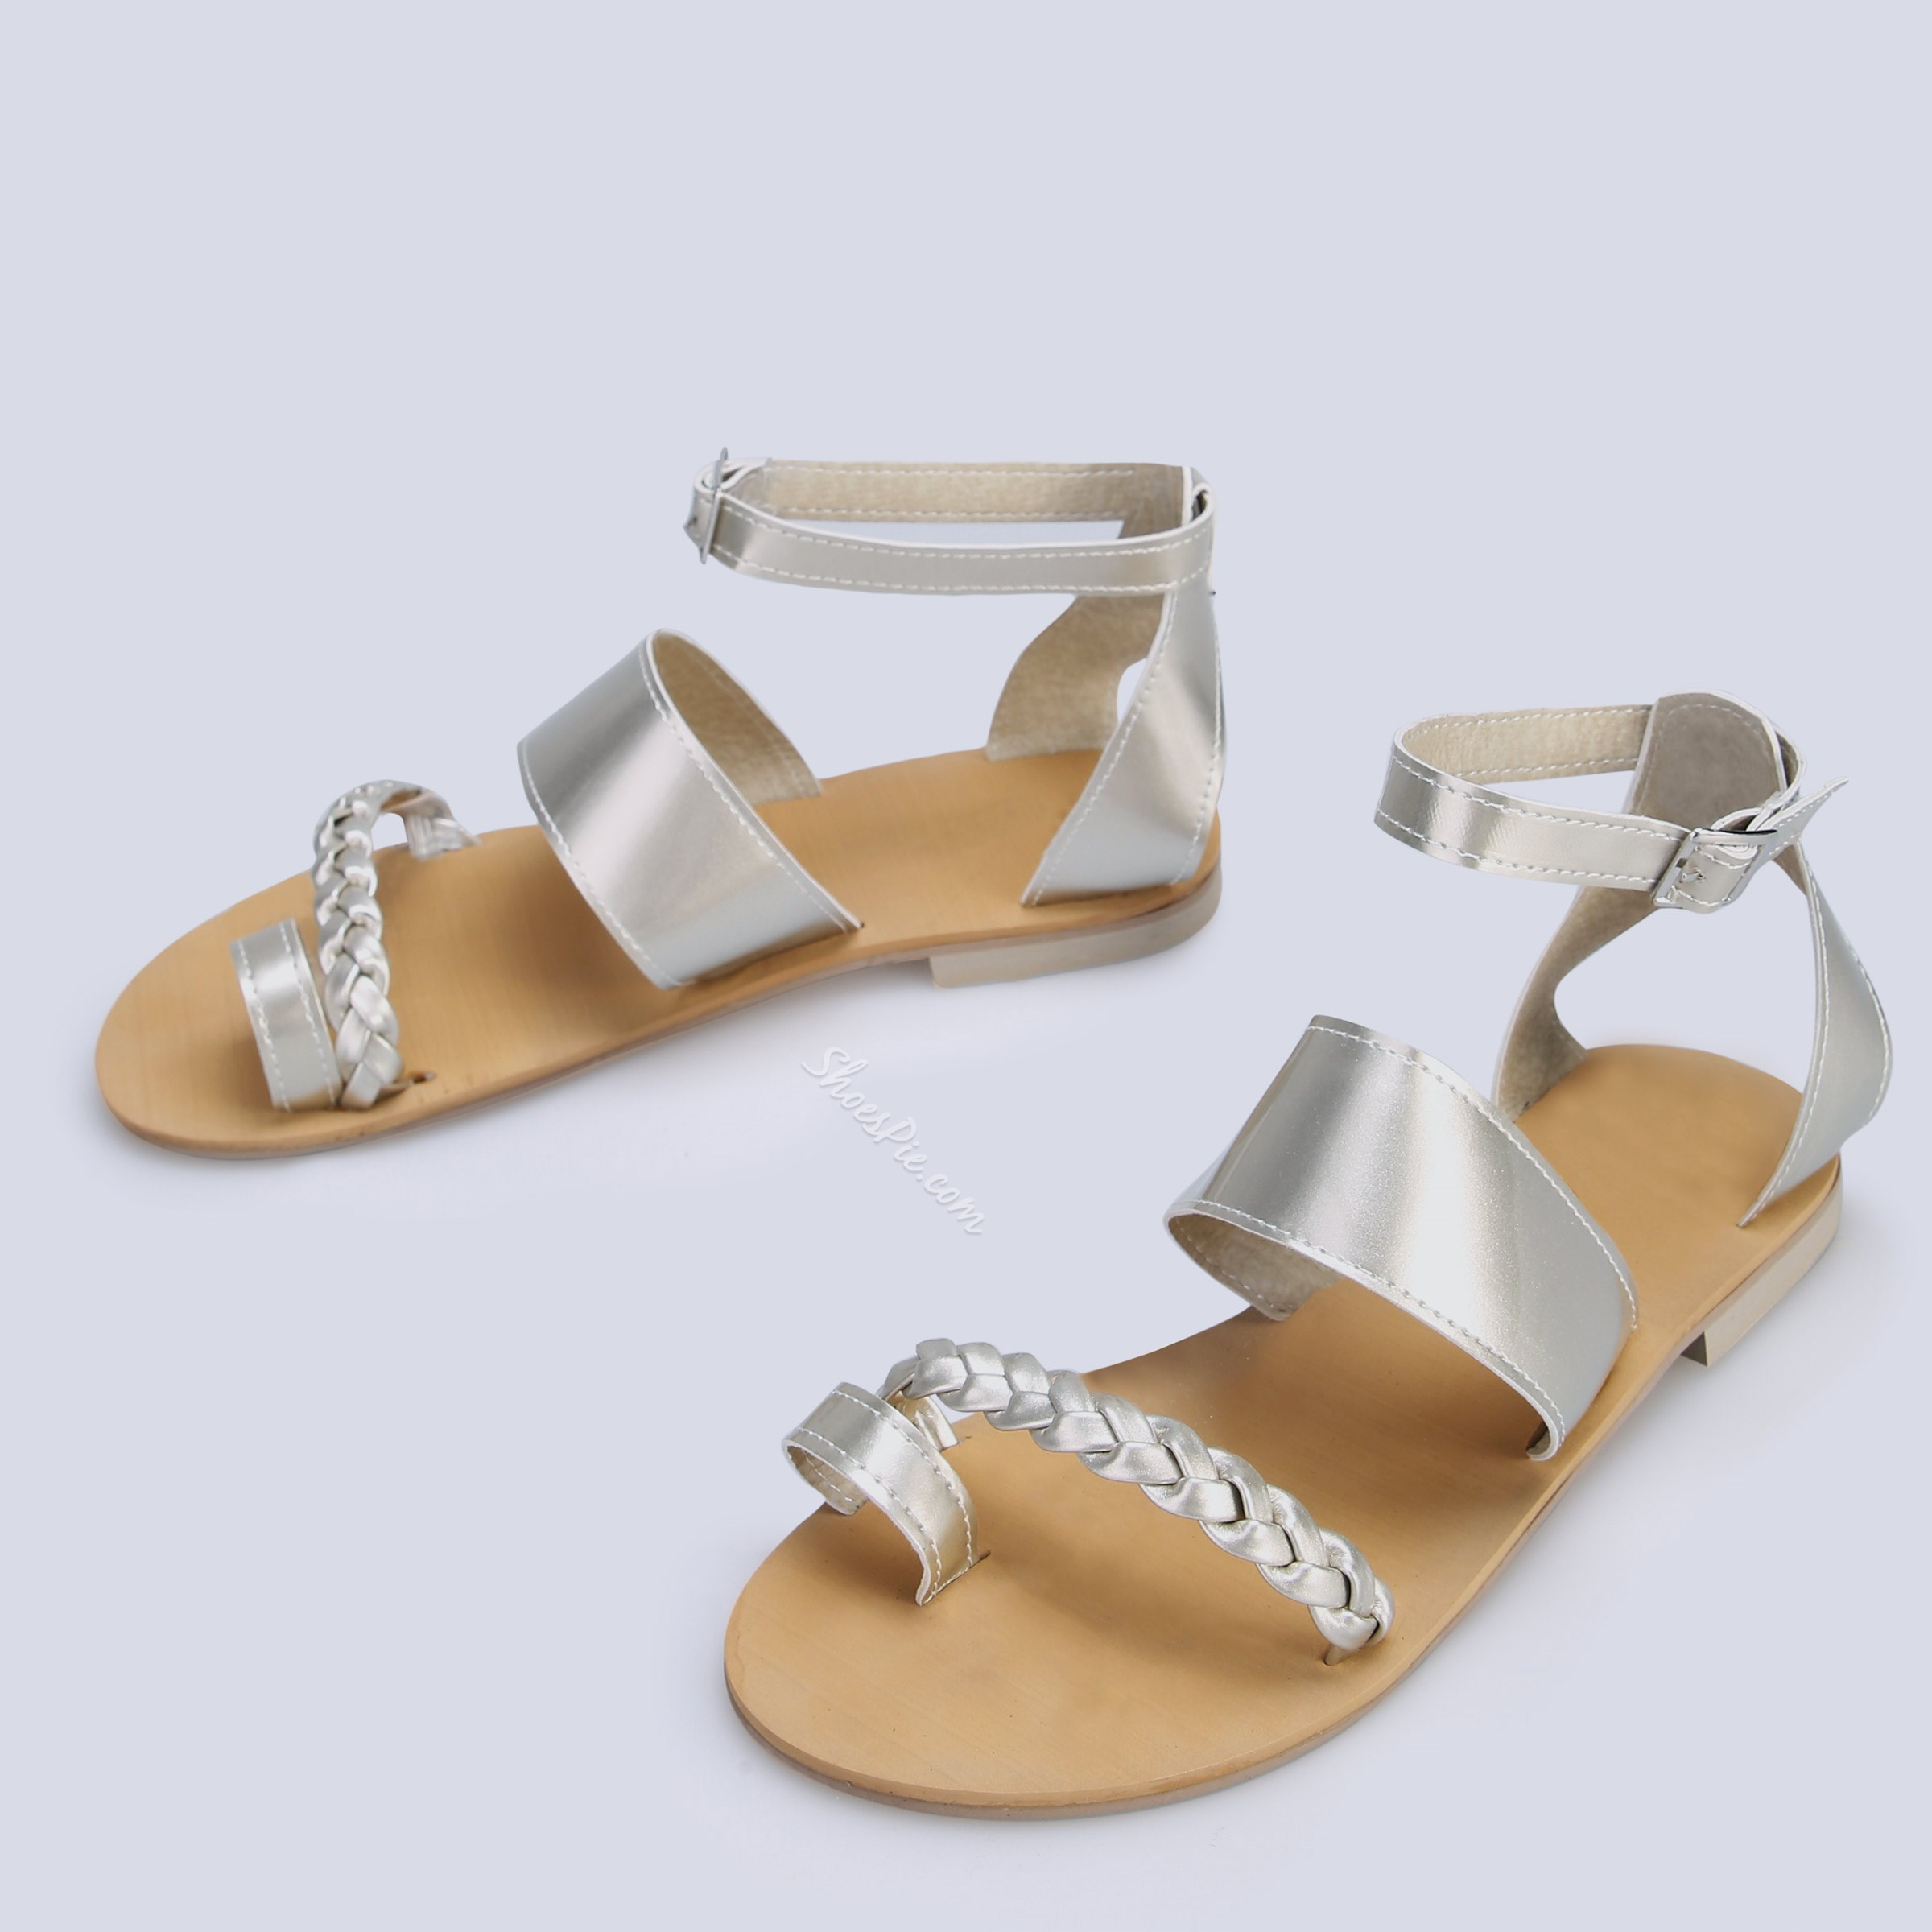 Shoespie Flat Buckle Ankle Strap Open Toe Woven Sandals